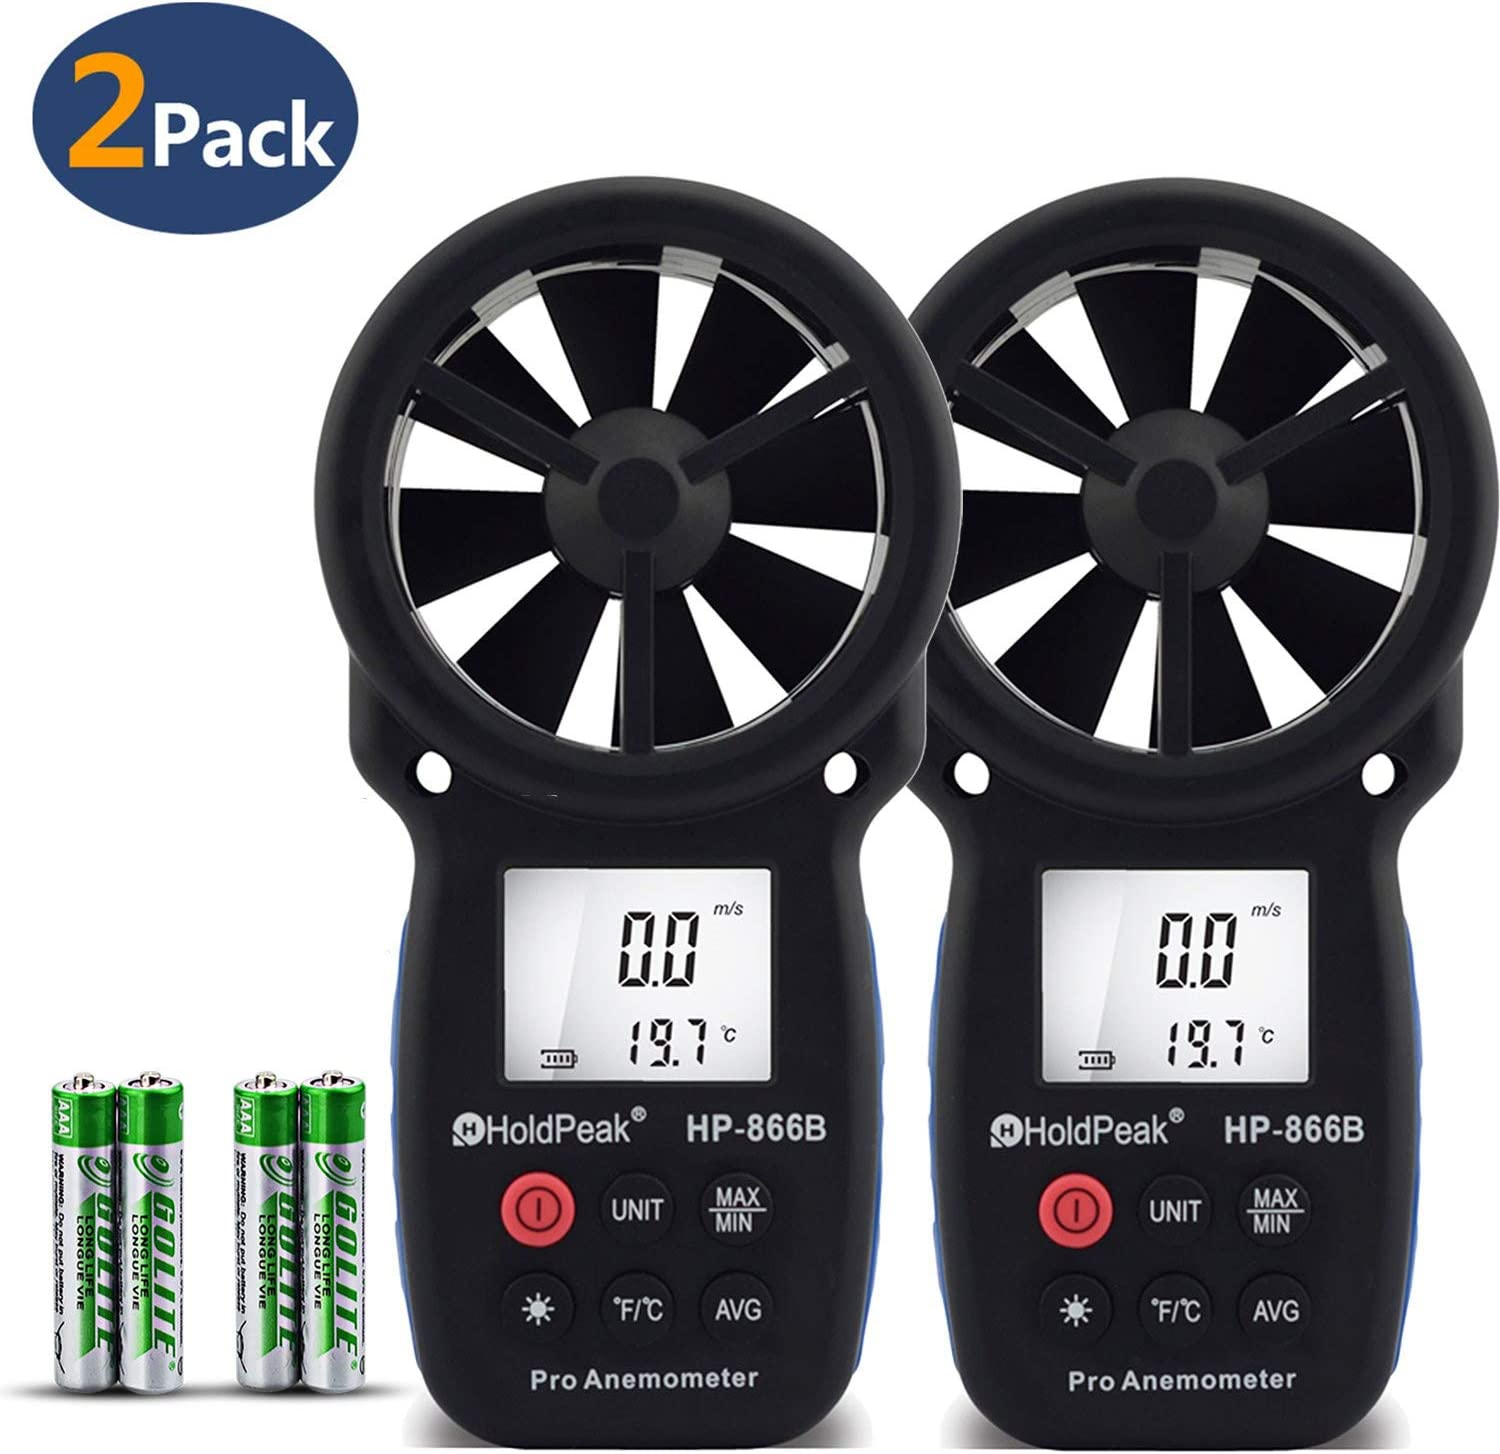 Holdpeak HP-866B 2Pcs Digital Anemometer Handheld LCD Wind Speed Meter Measuring Wind Speed, Temperature Wind Chill Backlight Max/Min Data